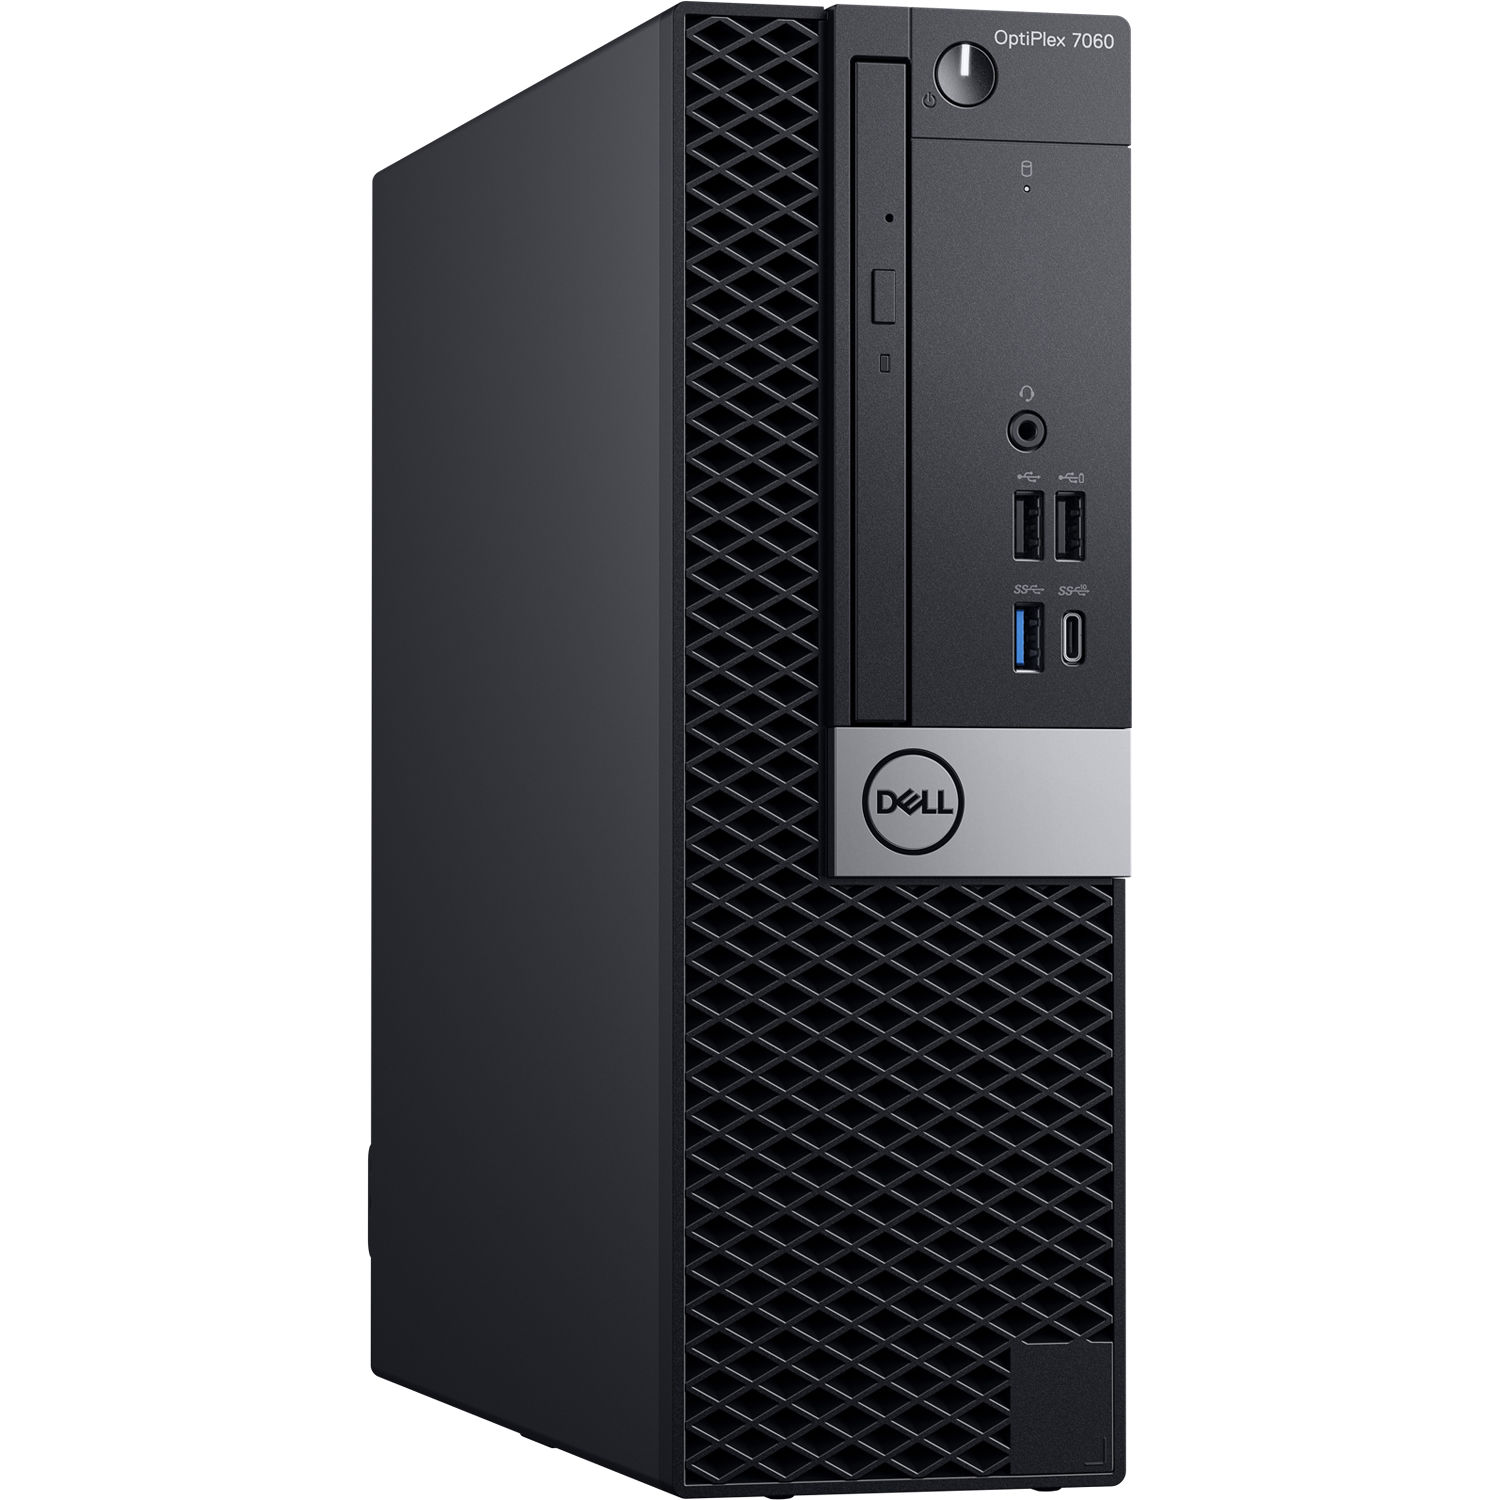 dell_t7g0k_optiflex_7060_sff_i7_8700_1429609.jpg